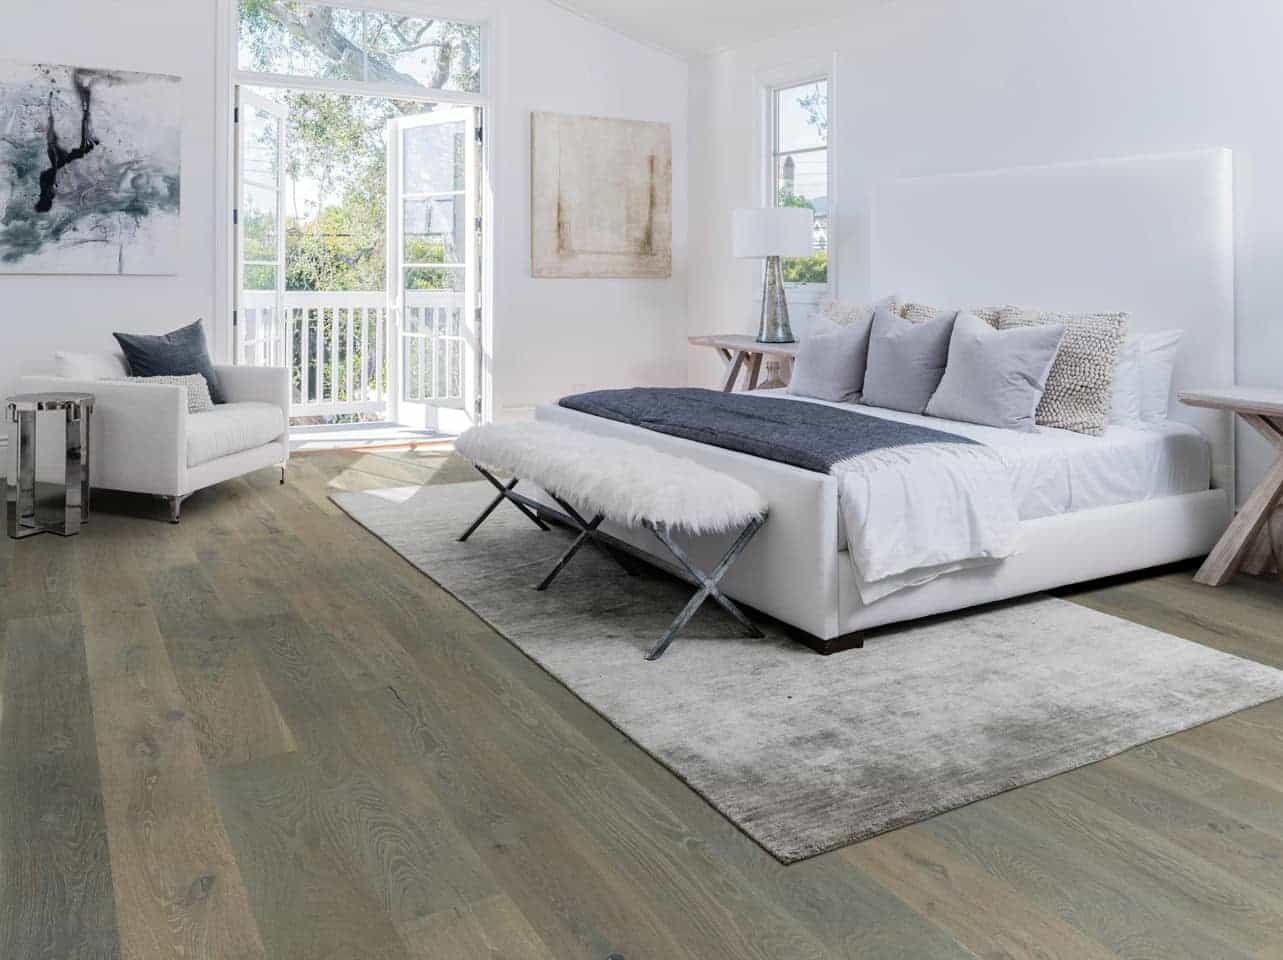 Healthy indoor air quality certified. The product is Big Sur from the Hallmark Floors' Alta Vista engineered hardwood floors collection. It is one of our new wood floor colors.